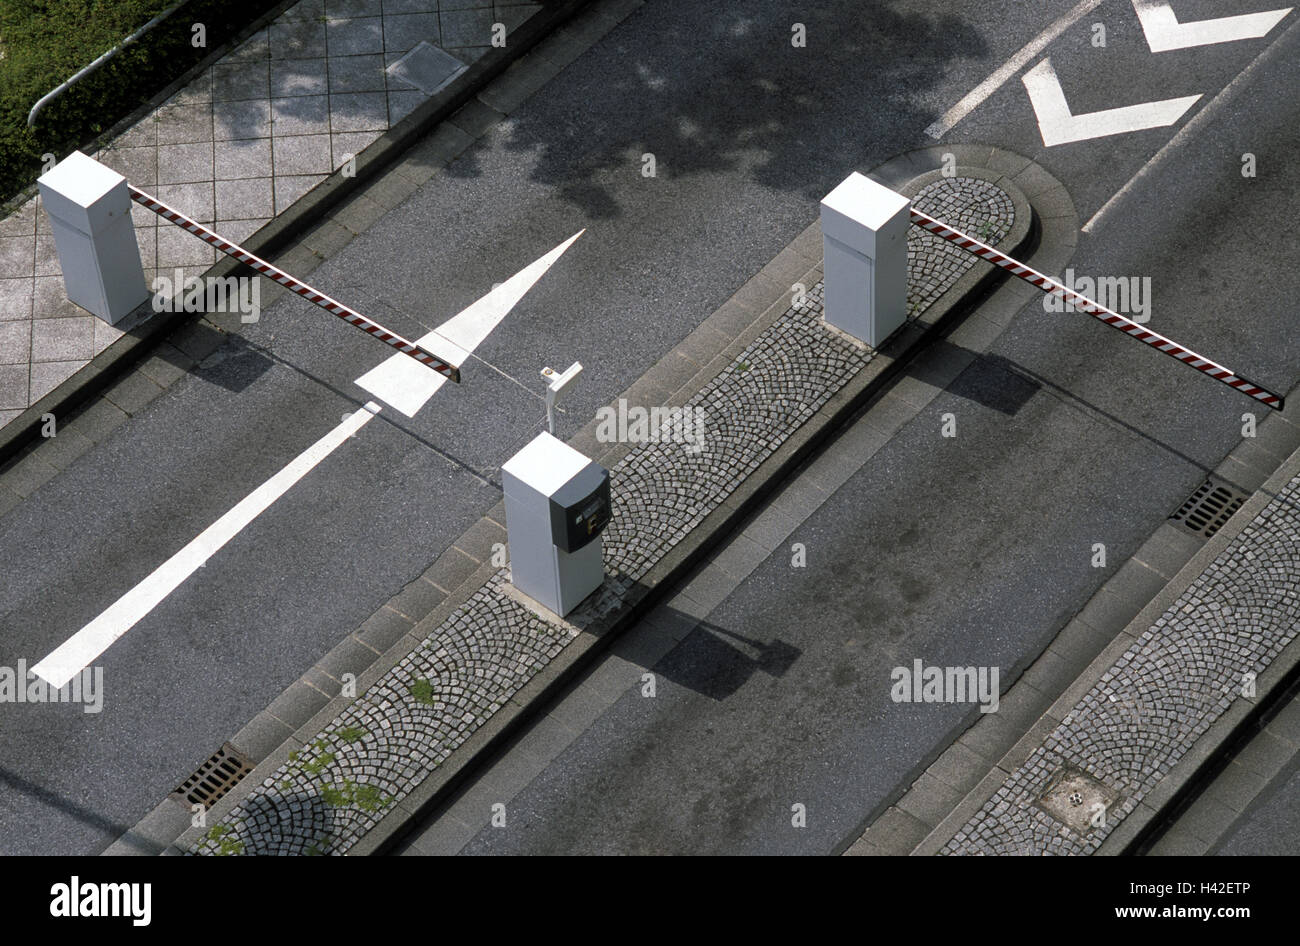 Two Way Switch Stock Photos Images Alamy Car Park Exit Barriers Arrow From Above Street Lanes